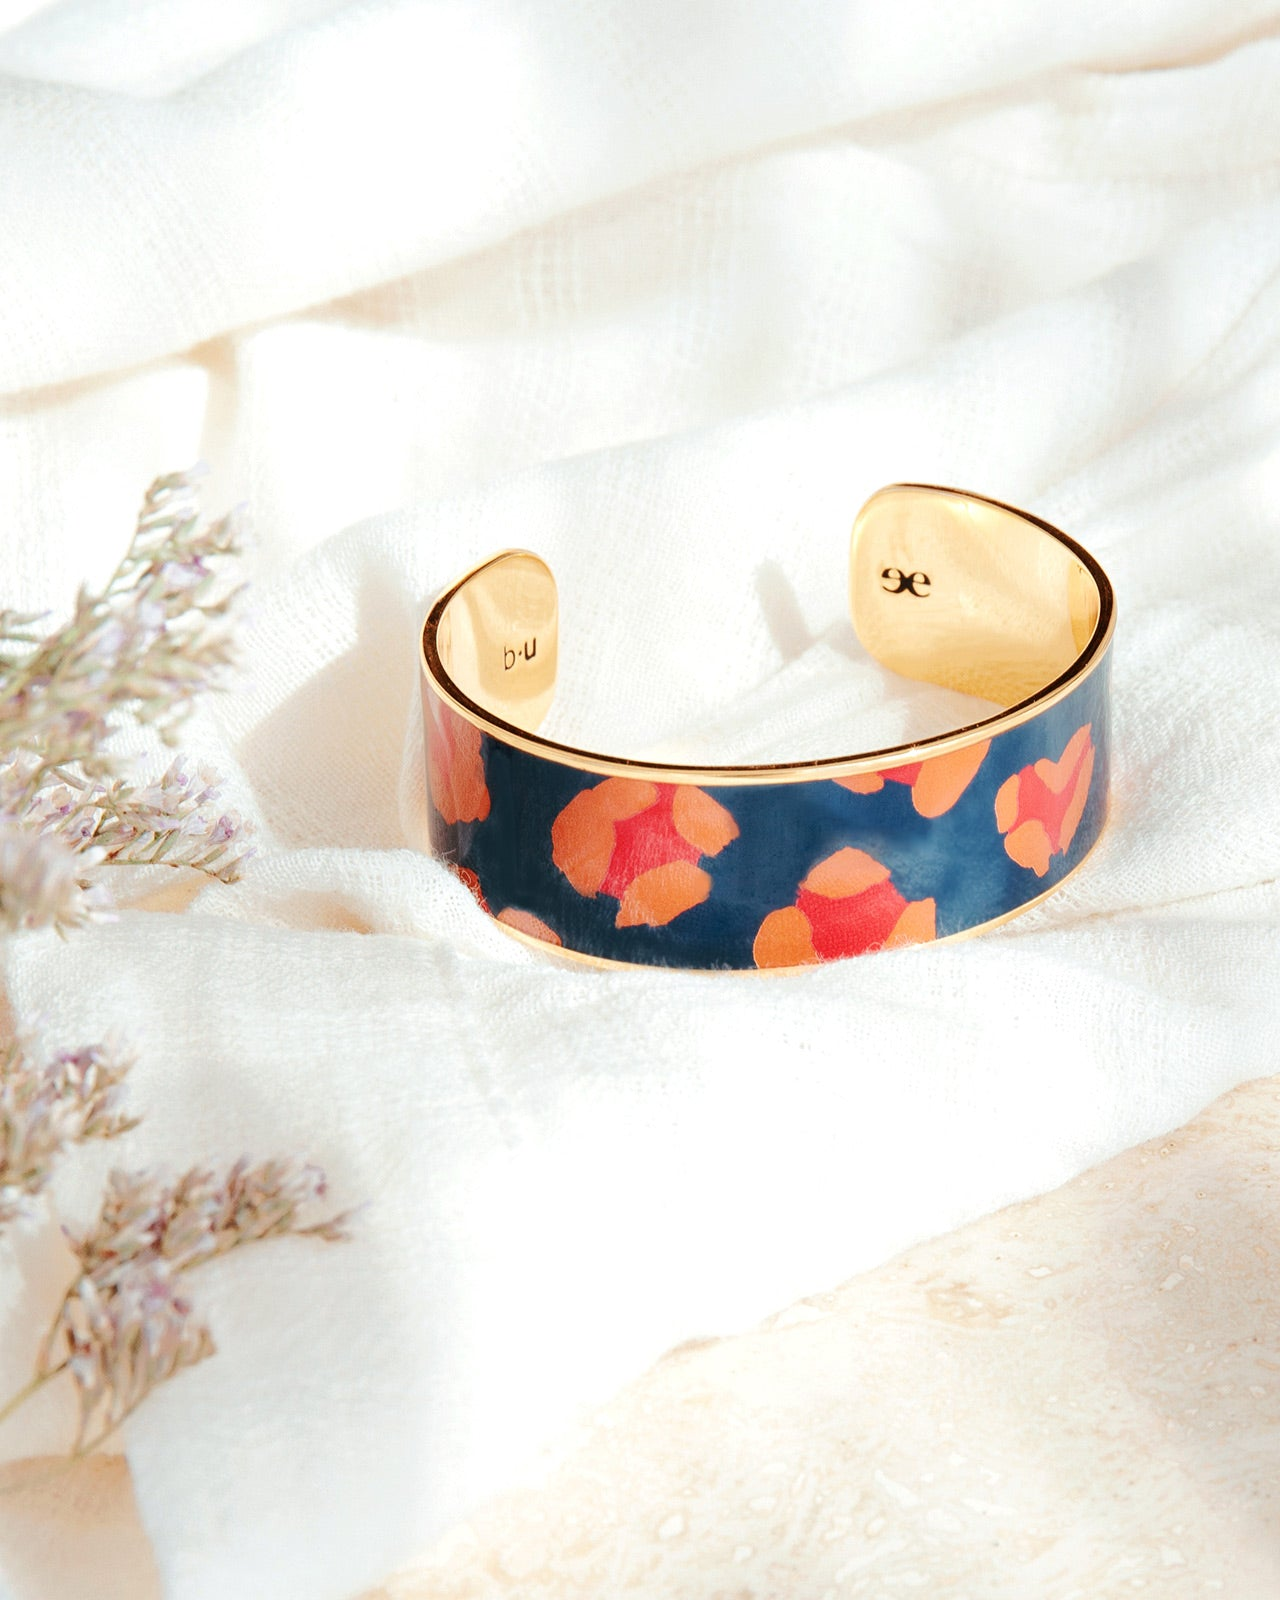 Le jonc Léo Léo bleu nuit 2 cm - Bangle up x émoi émoi